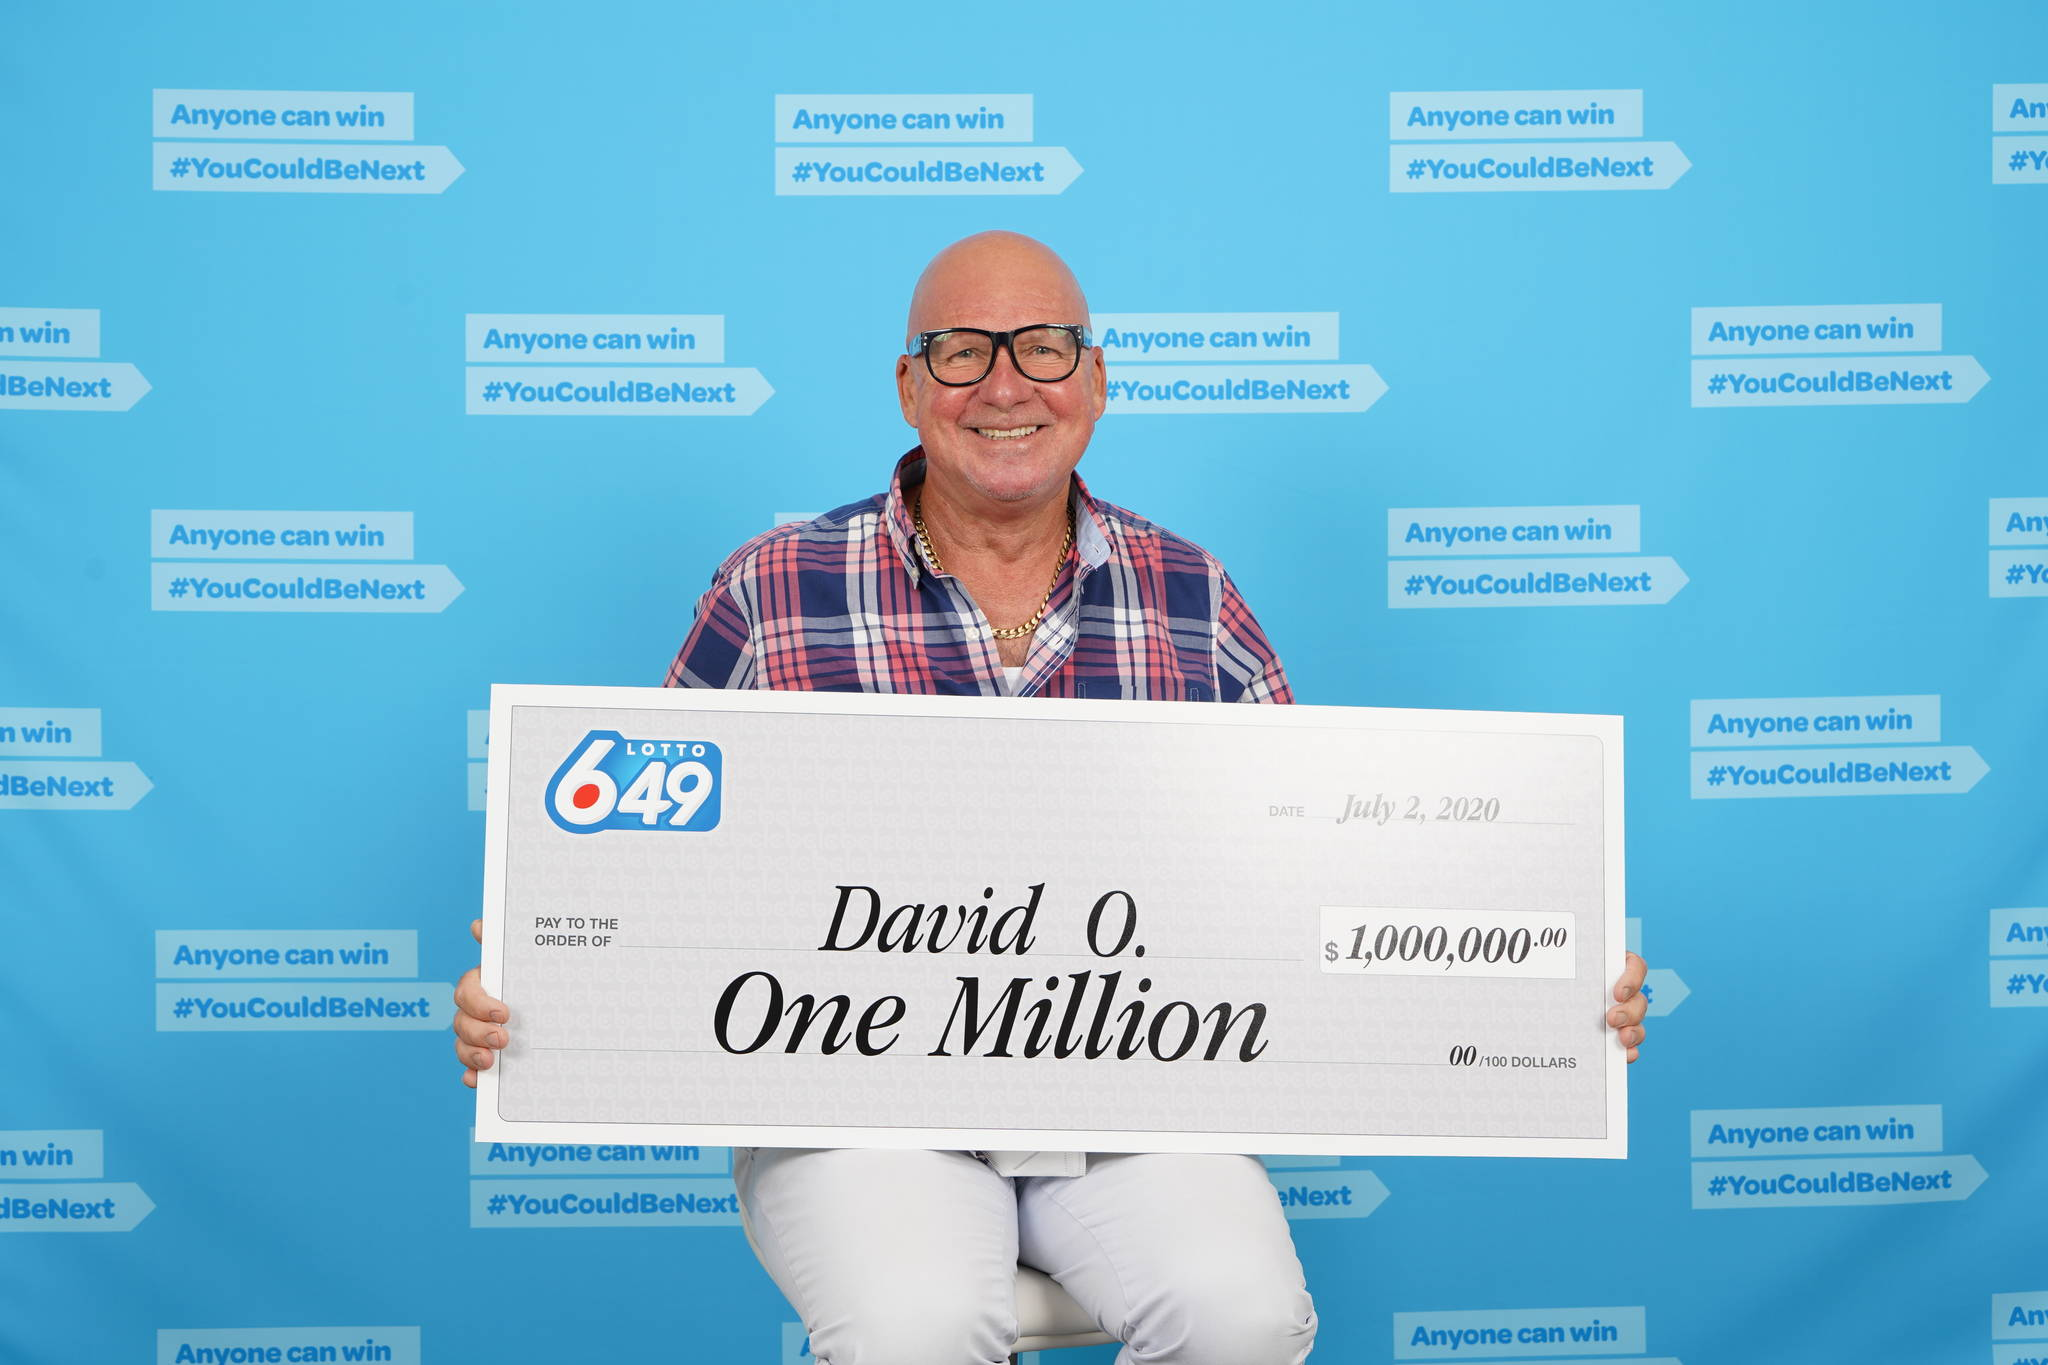 Lightning has struck twice for one Burnaby, B.C. man. David O'Brien collected his second major Lotto 6/49 winnings on July 3, 2020, in Vancouver.